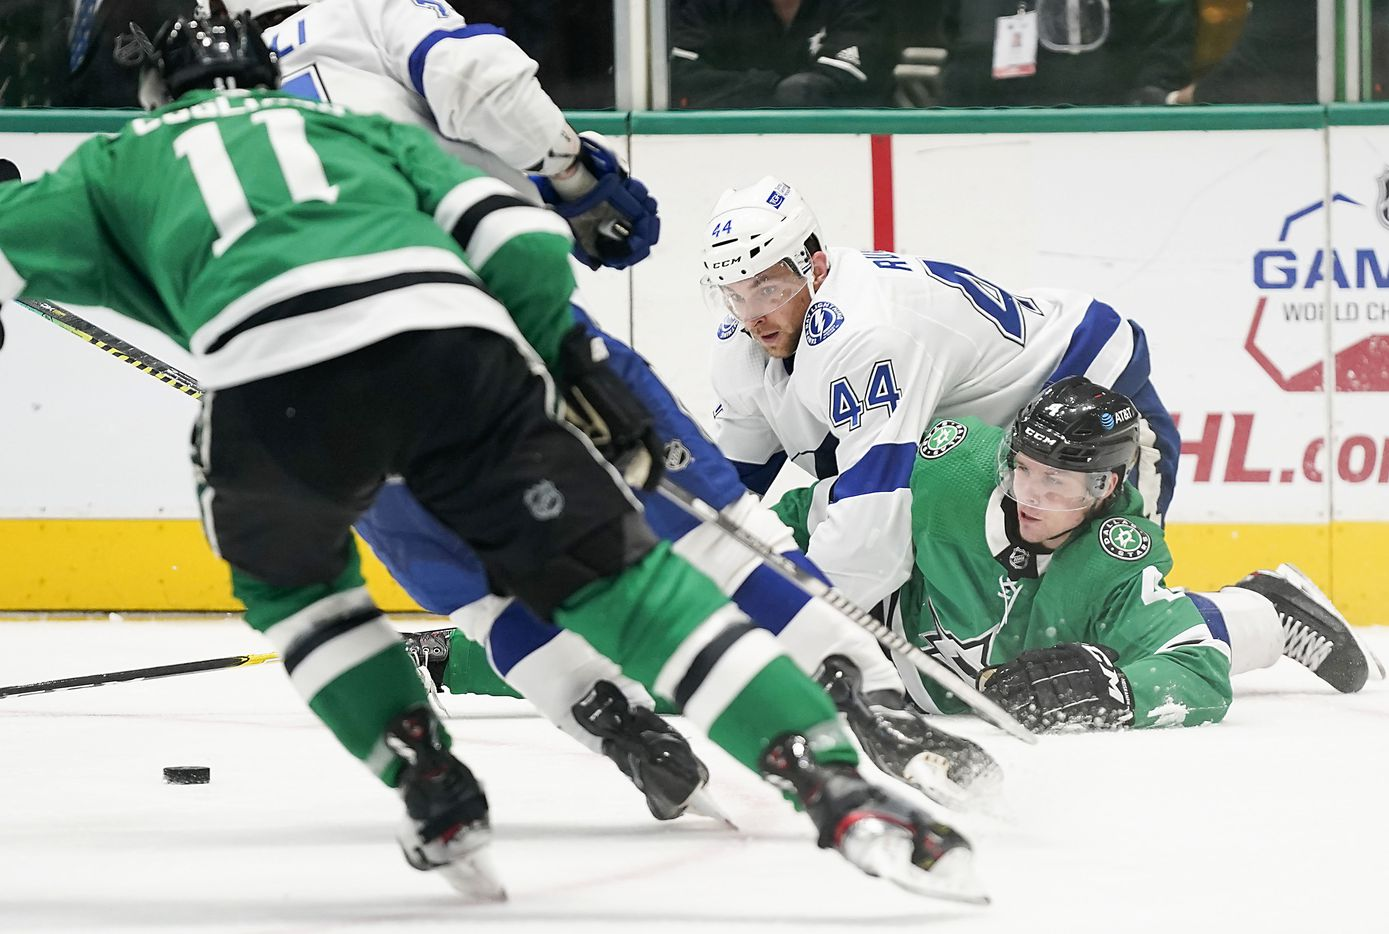 Dallas Stars defenseman Miro Heiskanen (4) fights for the puck with Tampa Bay Lightning defenseman Jan Rutta (44) during the third period of an NHL hockey game at the American Airlines Center on Thursday, March 25, 2021, in Dallas. The Stars won the game 4-3. (Smiley N. Pool/The Dallas Morning News)